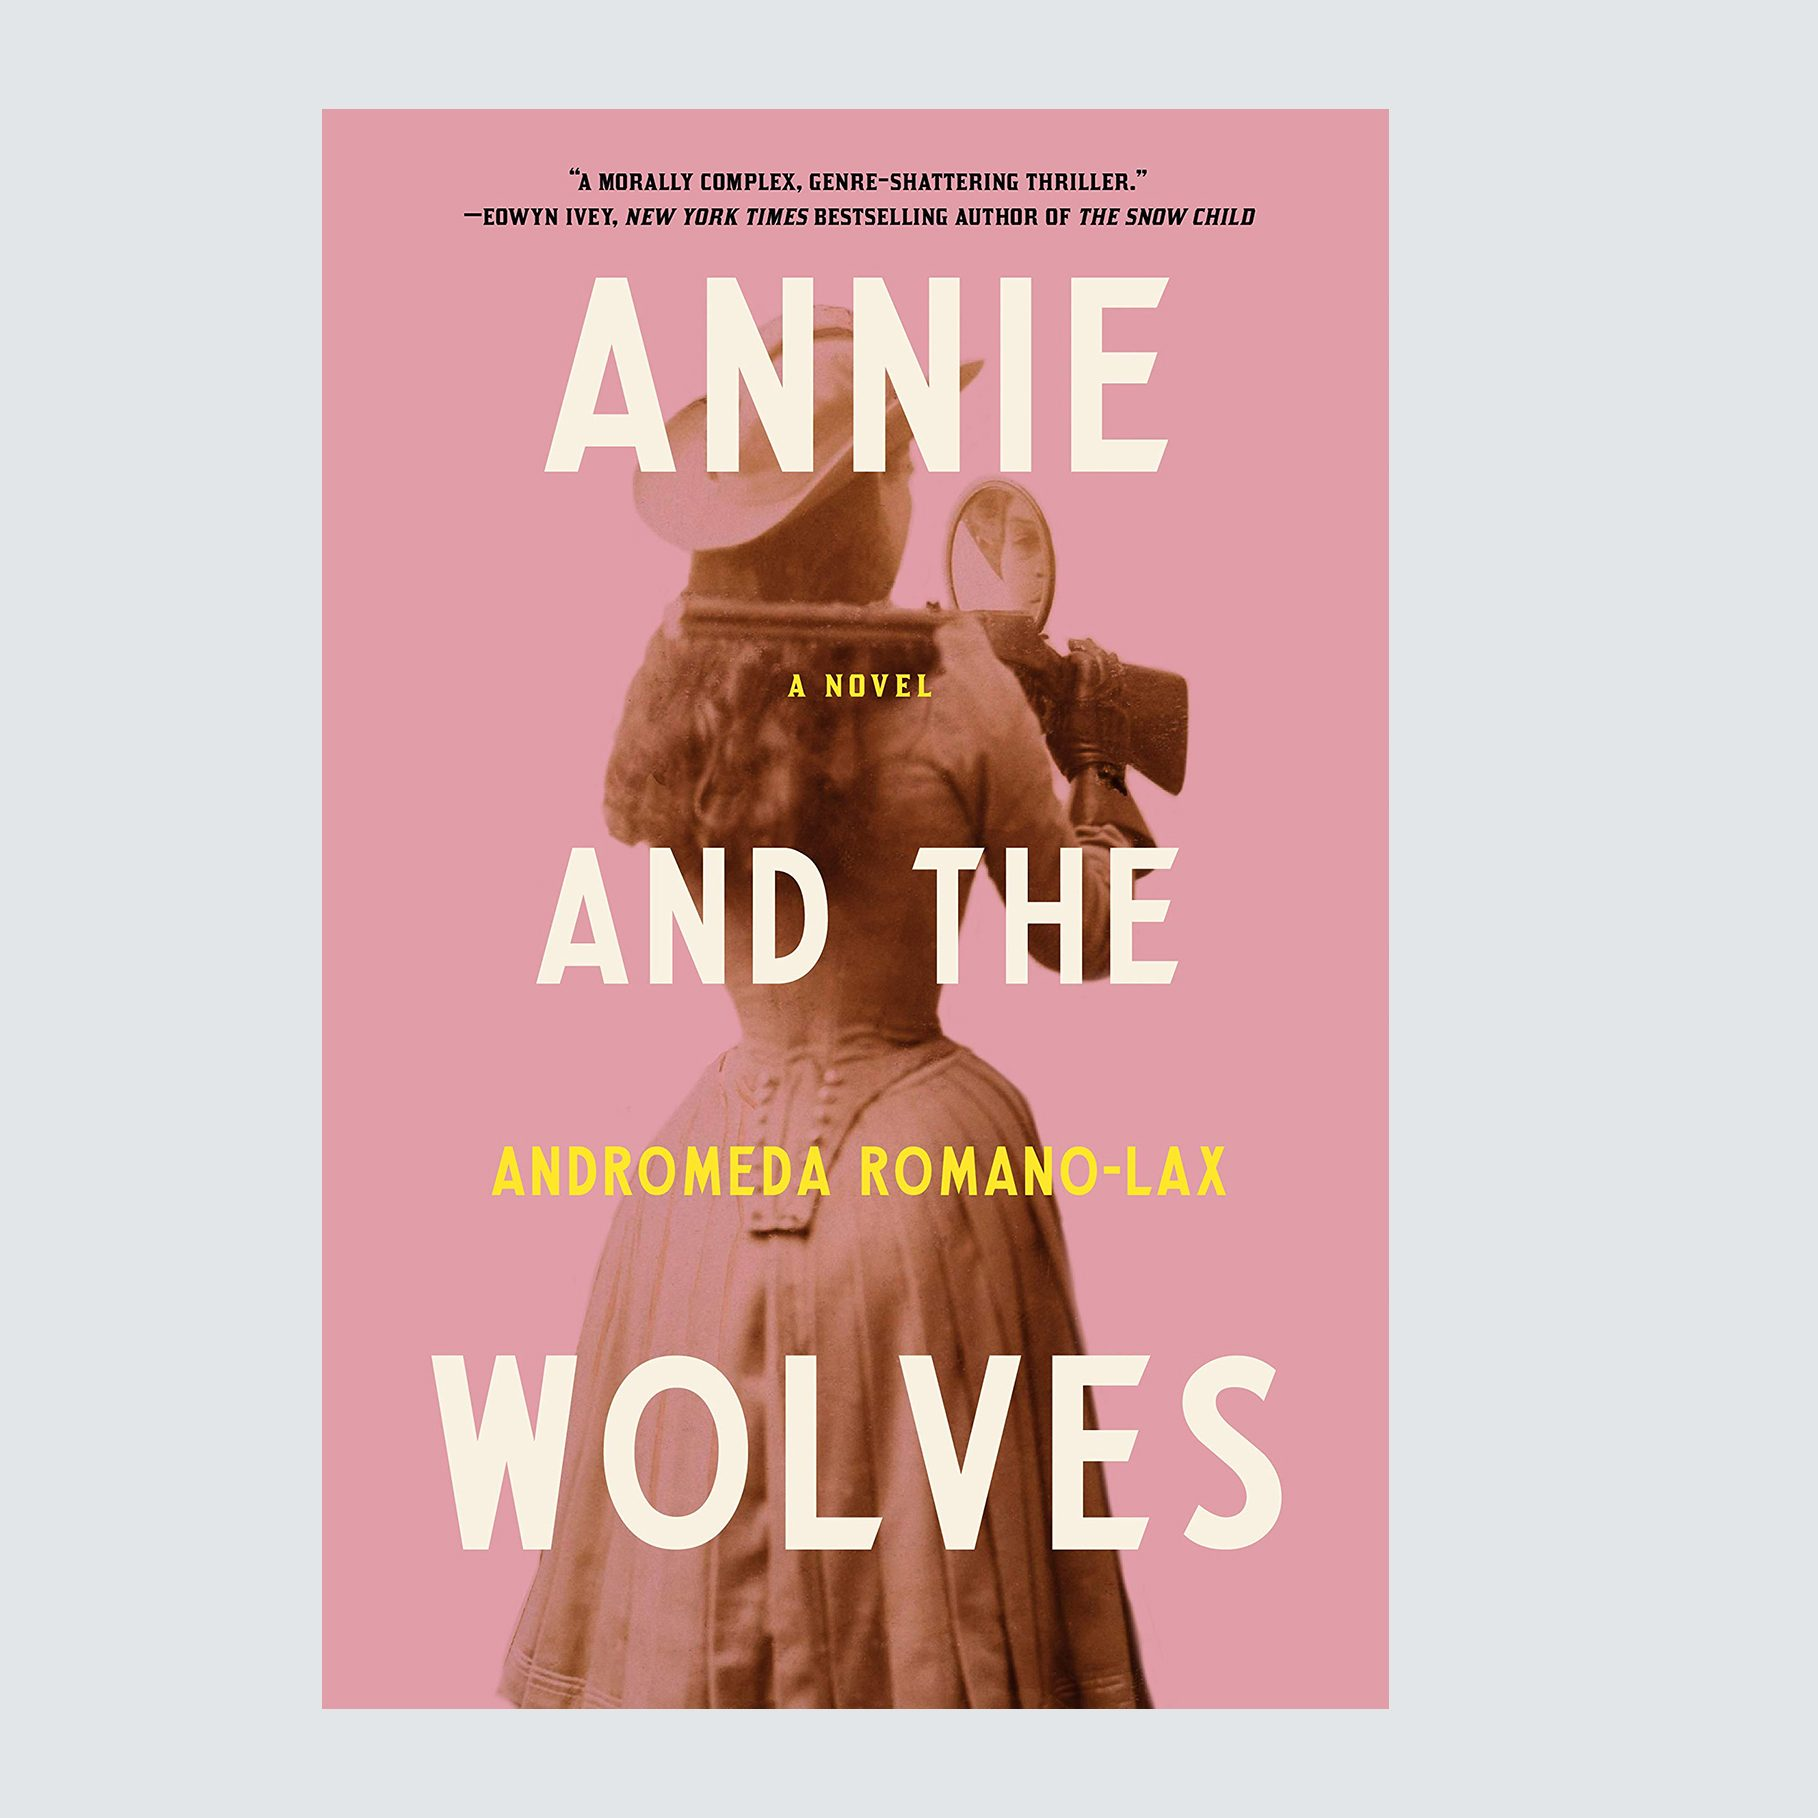 Annie and the Wolves by Andromeda Romano-Lax